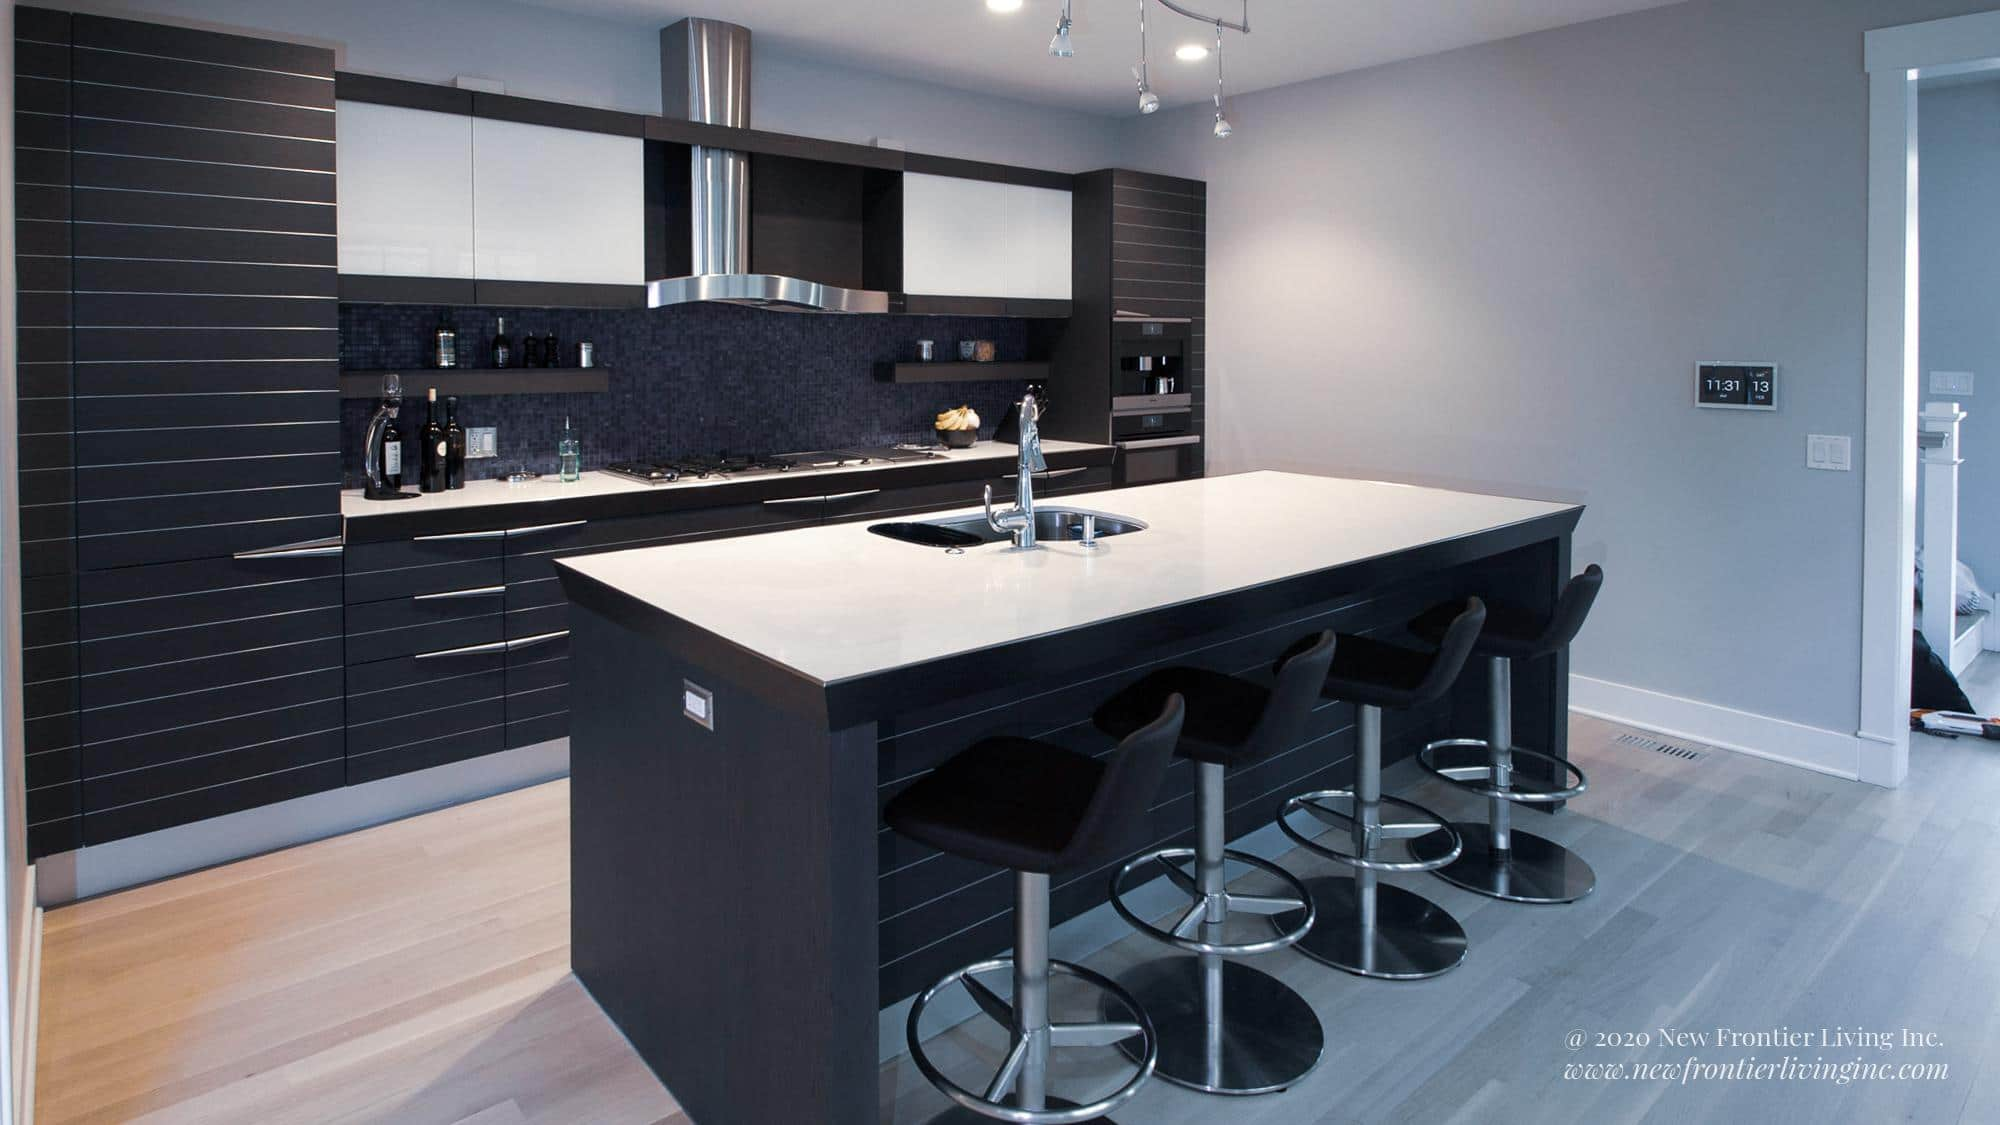 Black kitchen with light spaces, black kitchen island with white countertop and four bar stools